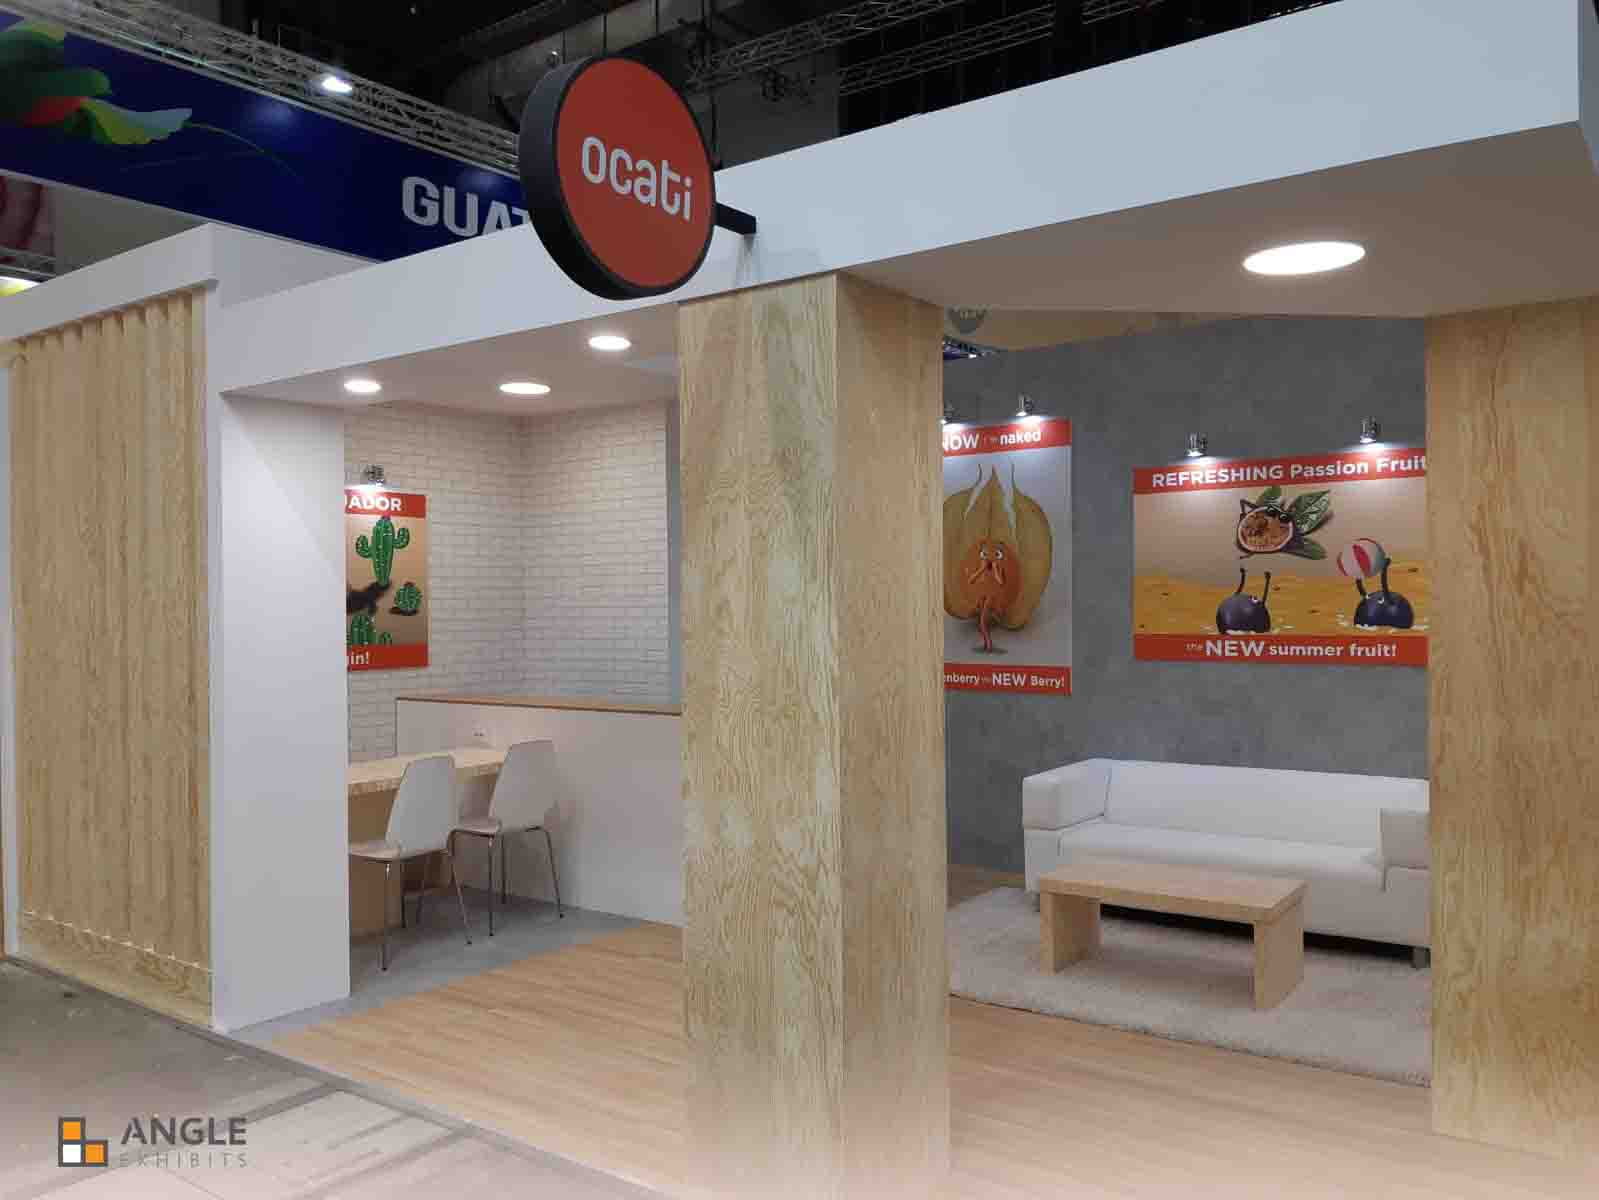 Fruit Logistica Angle exhibits